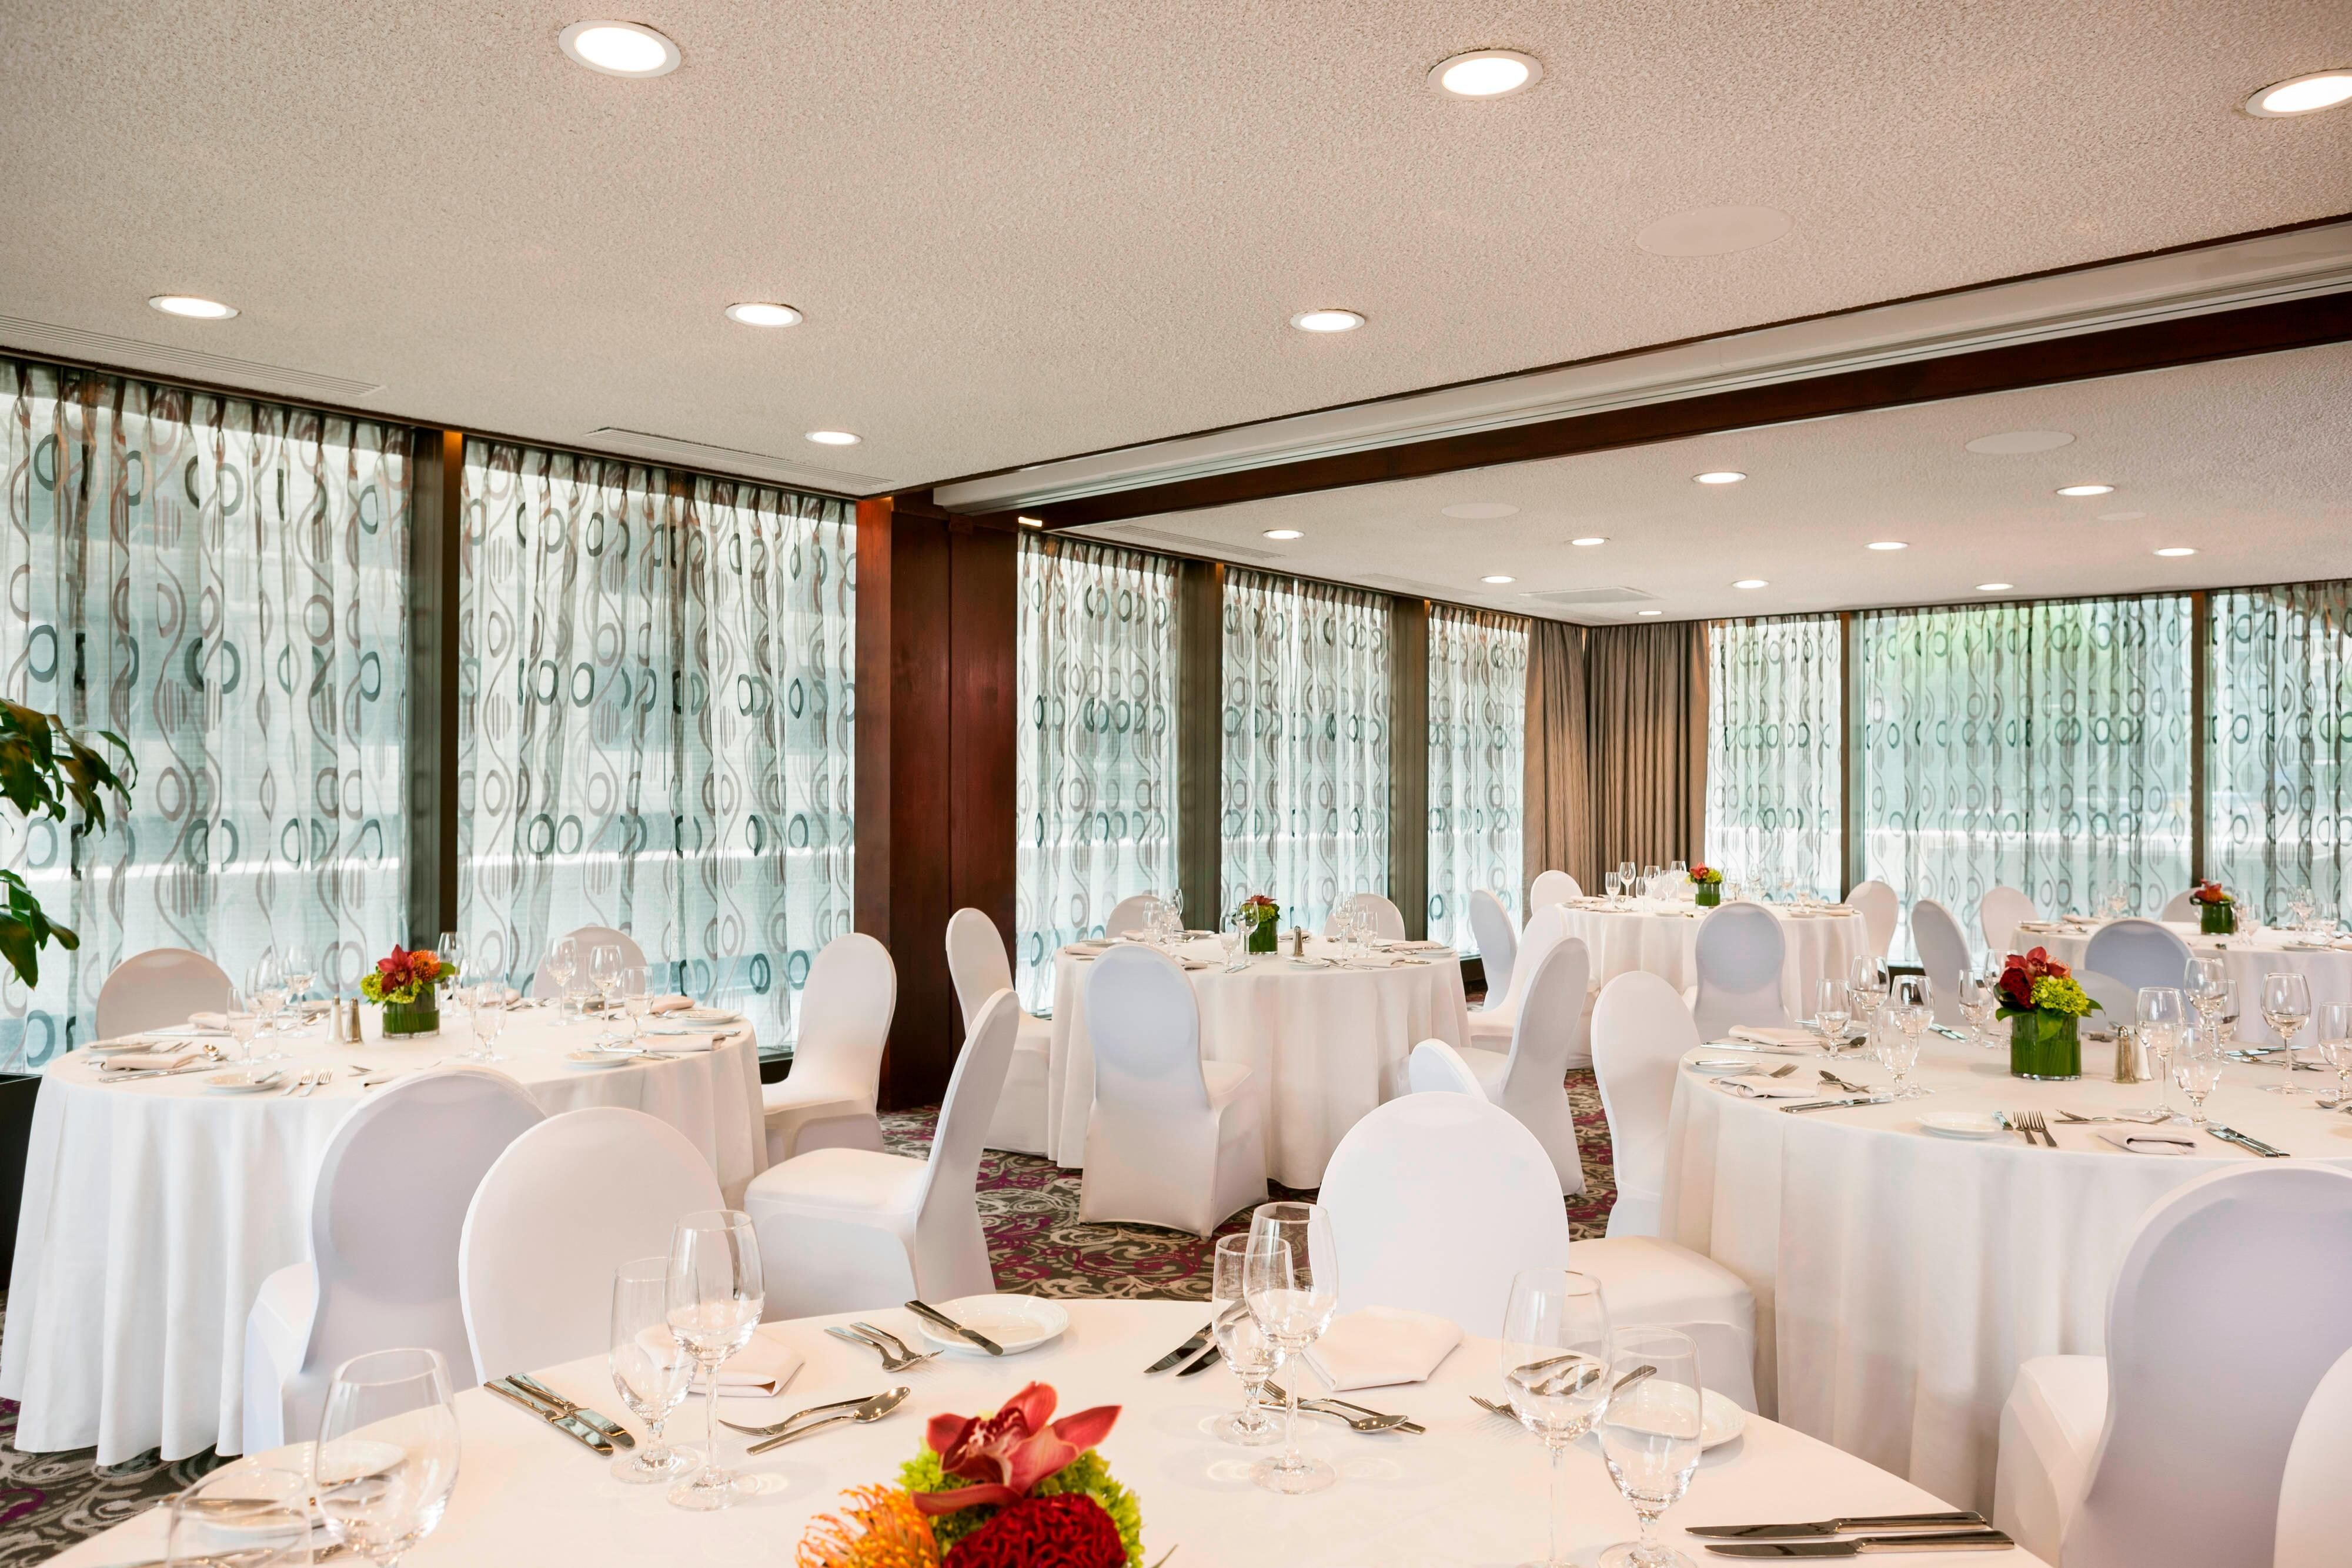 Huronie Meeting Room – Banquet Setup